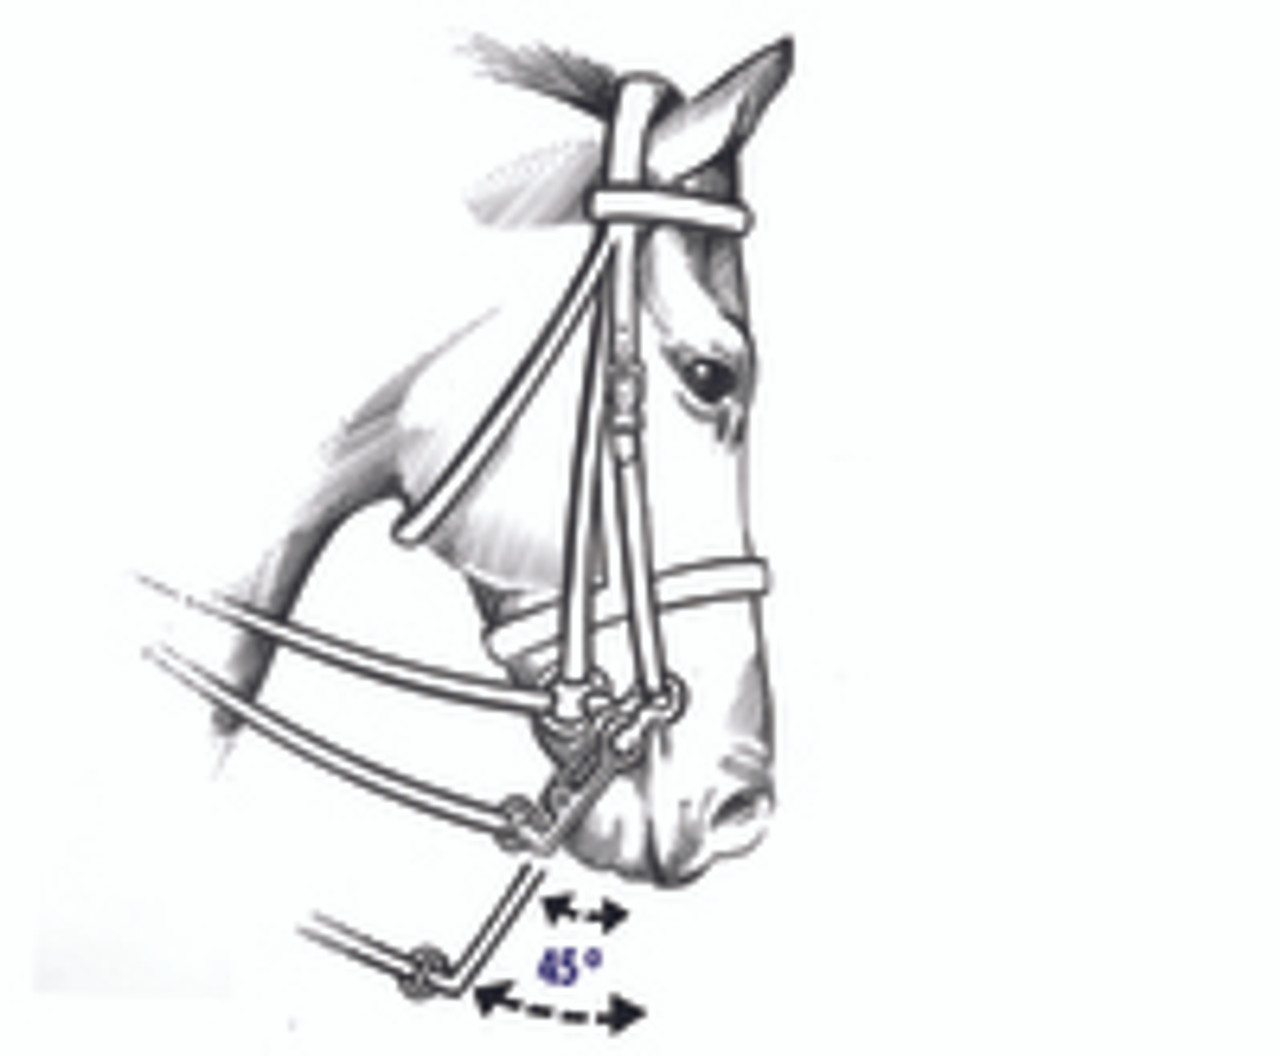 Double Bridles and the length of the Shanks